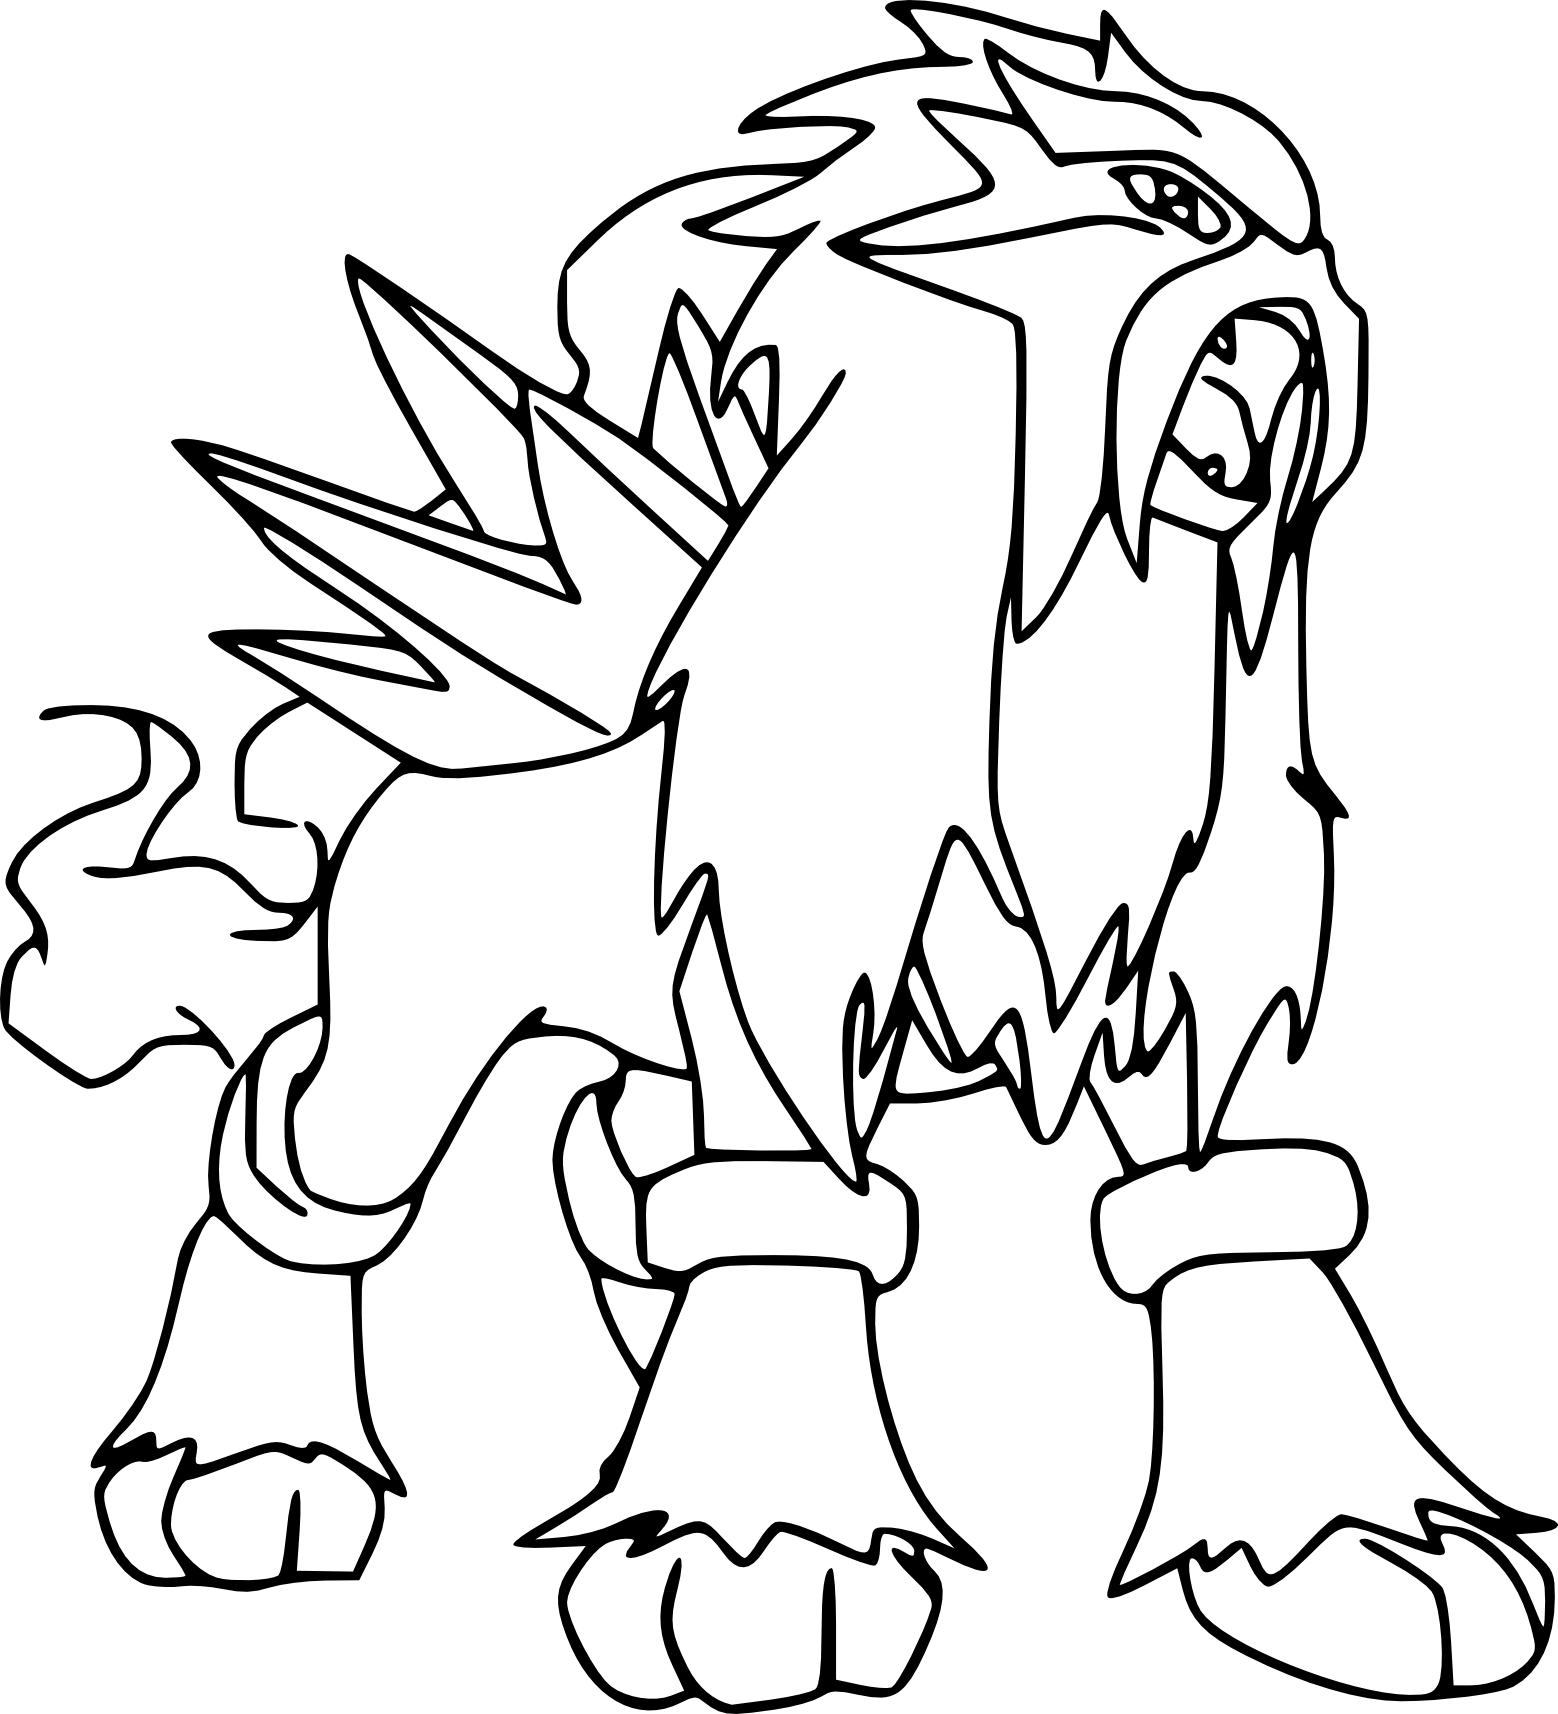 141 dessins de coloriage pokemon imprimer - Modele dessin pokemon ...